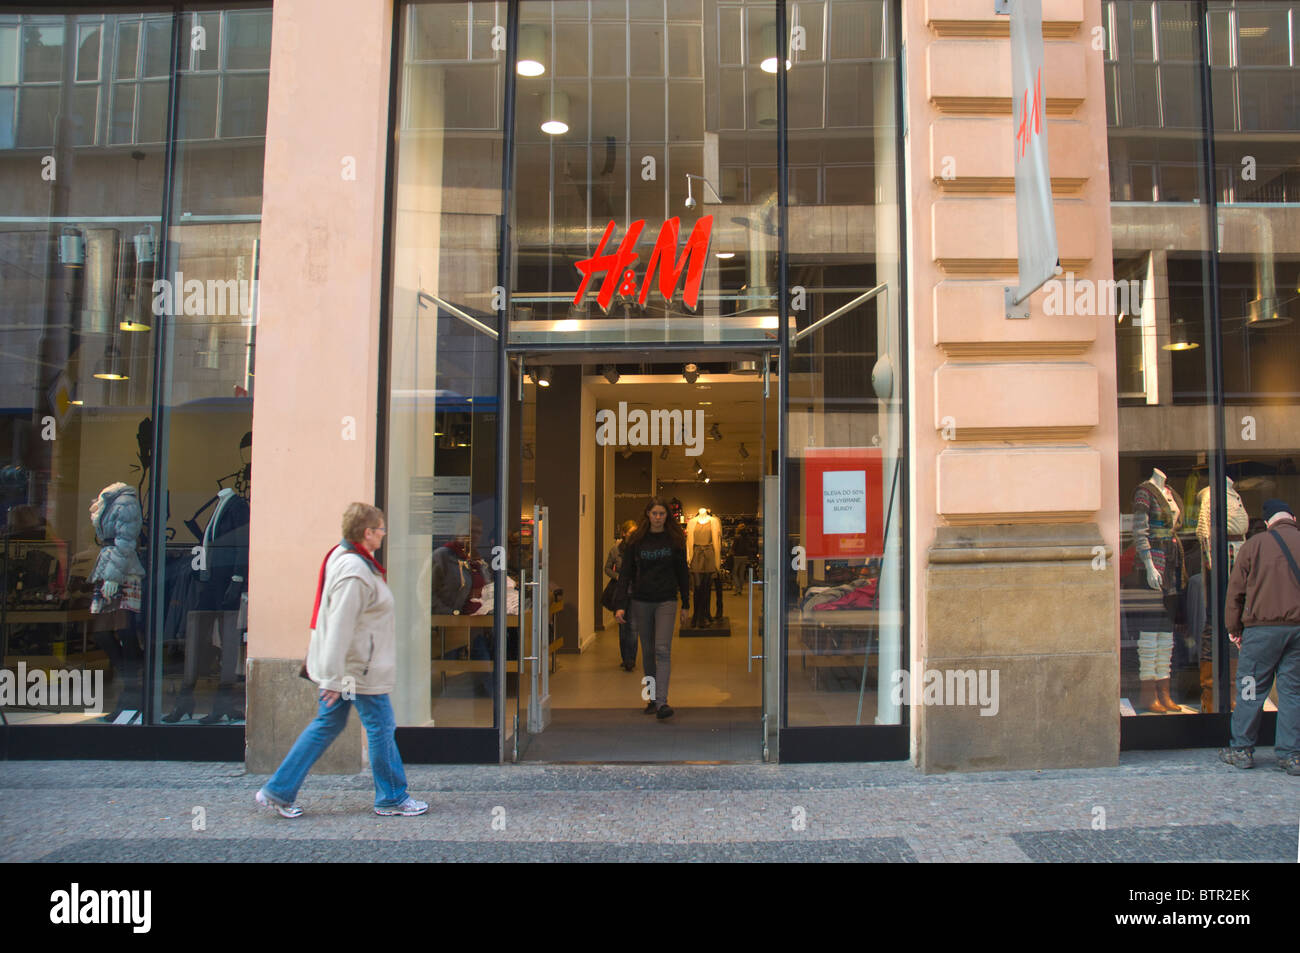 Store Exterior Stock Photos & Store Exterior Stock Images ...